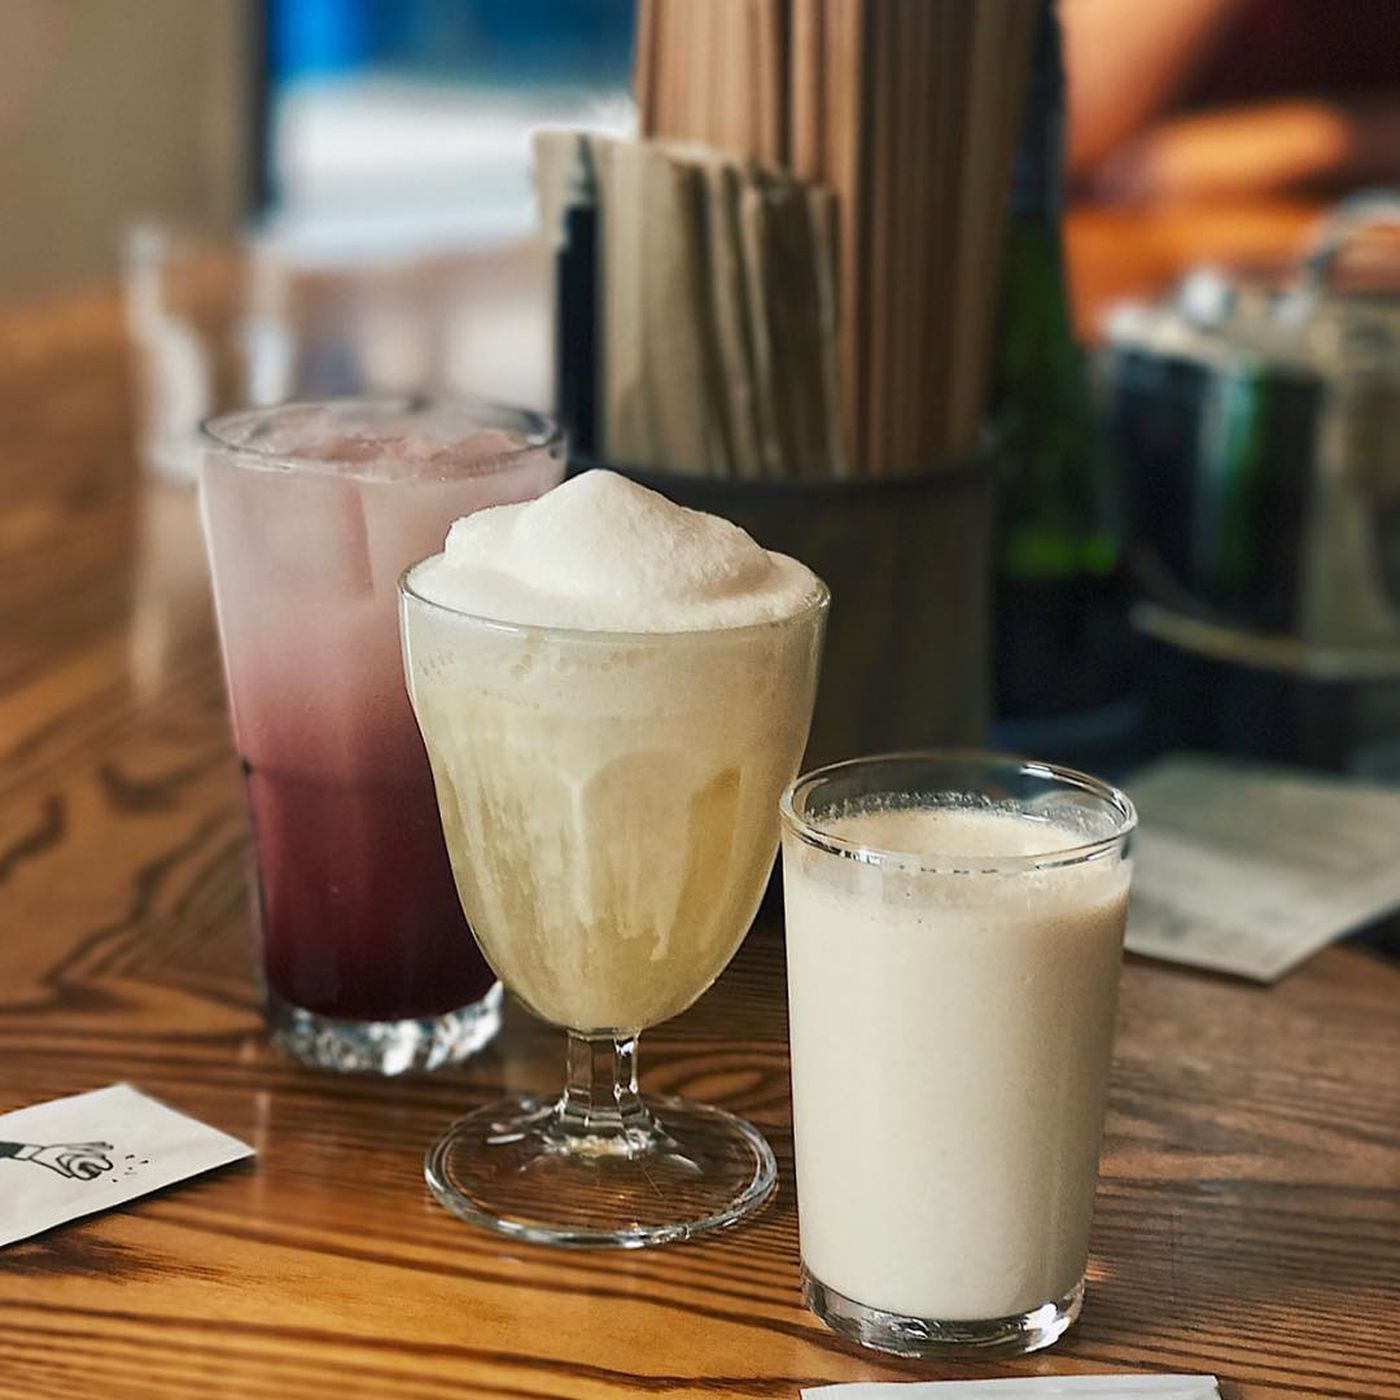 eater.com - Jonathan Nunn - 12 Magnificent Milk-Based Drinks in London